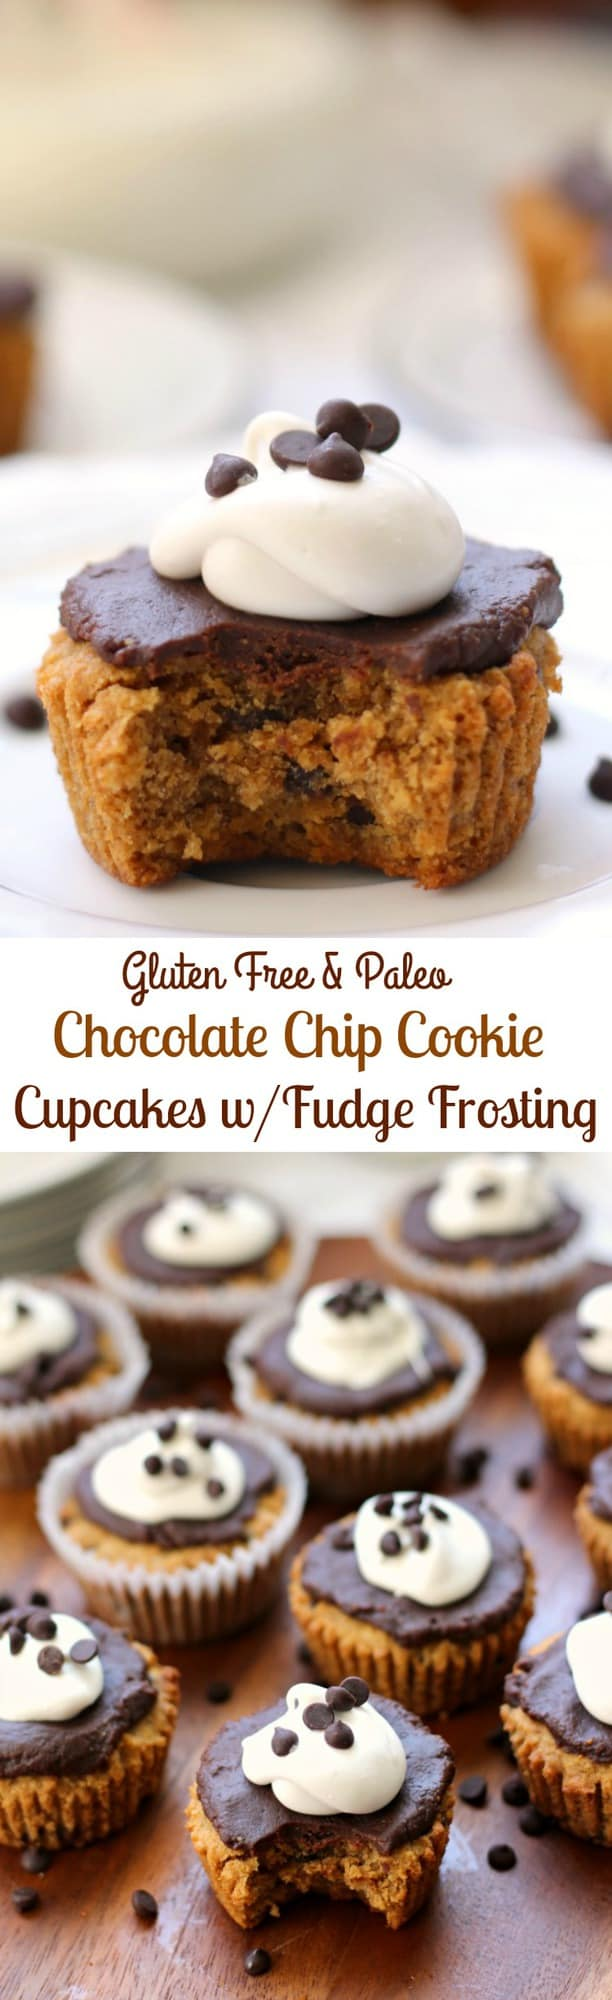 Paleo Chocolate Chip Cookie Cupcakes